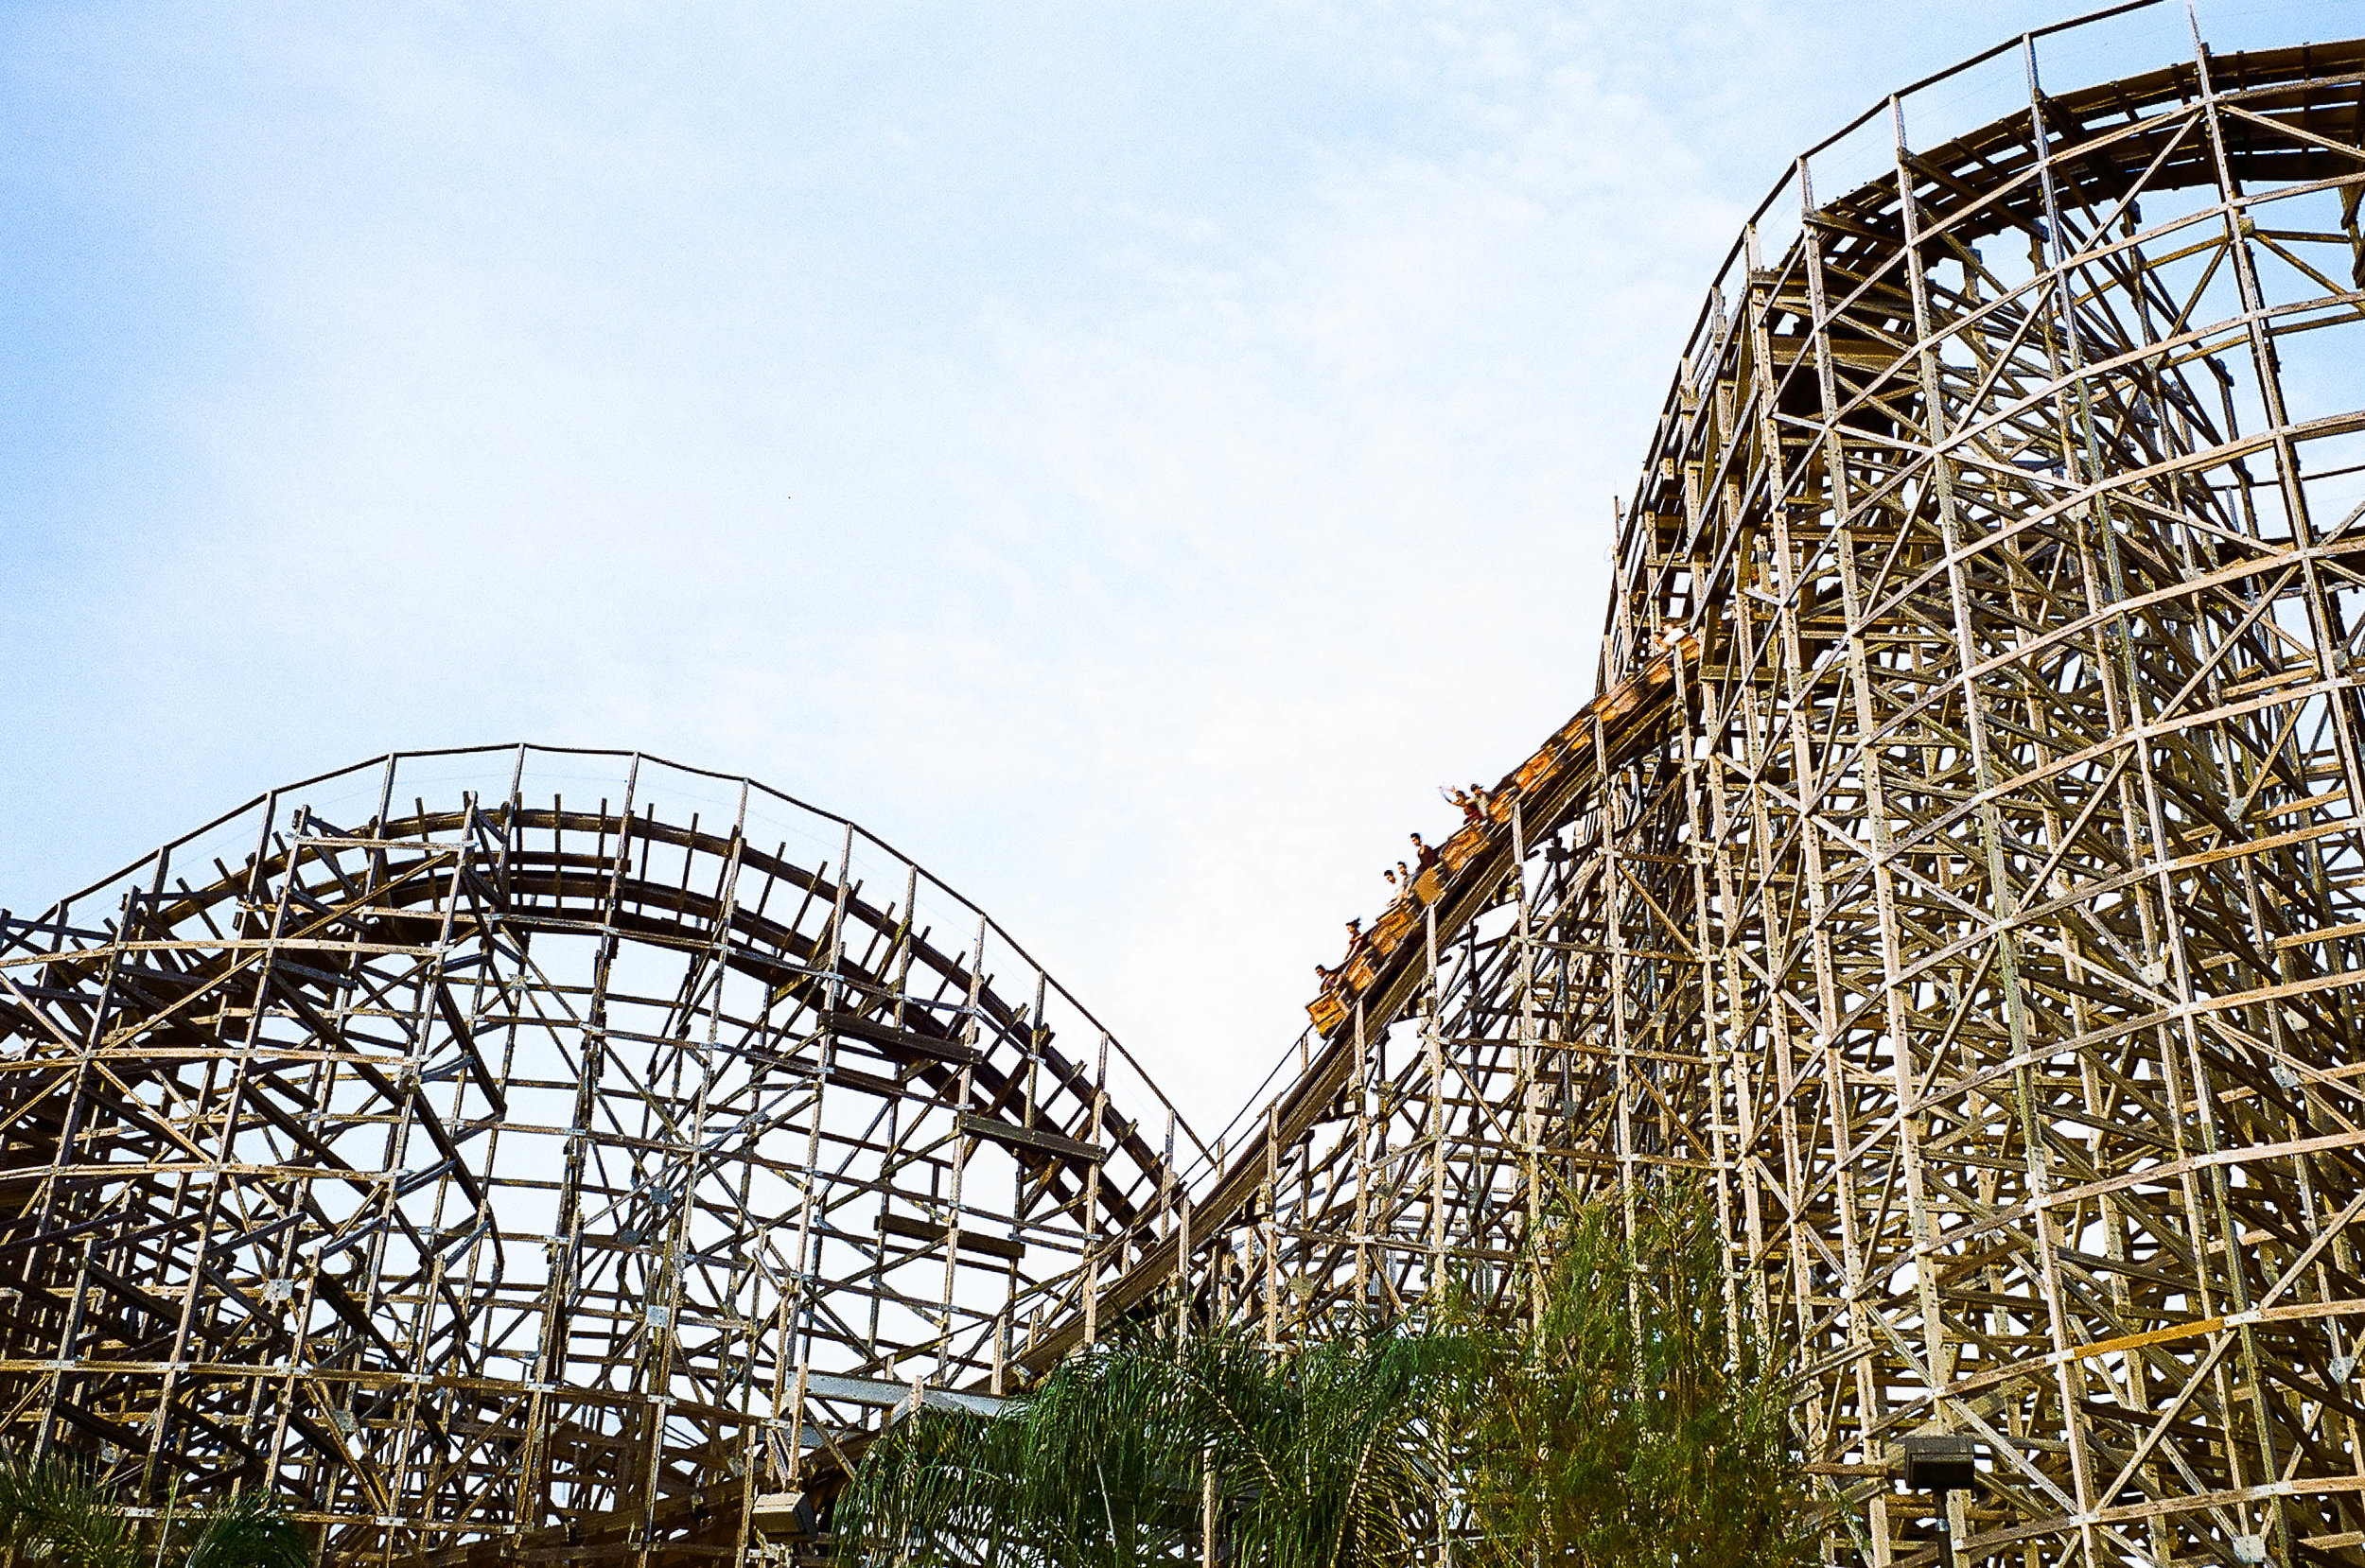 It was National Roller Coaster Day while we were here, so we got to ride this wooden one for half price!